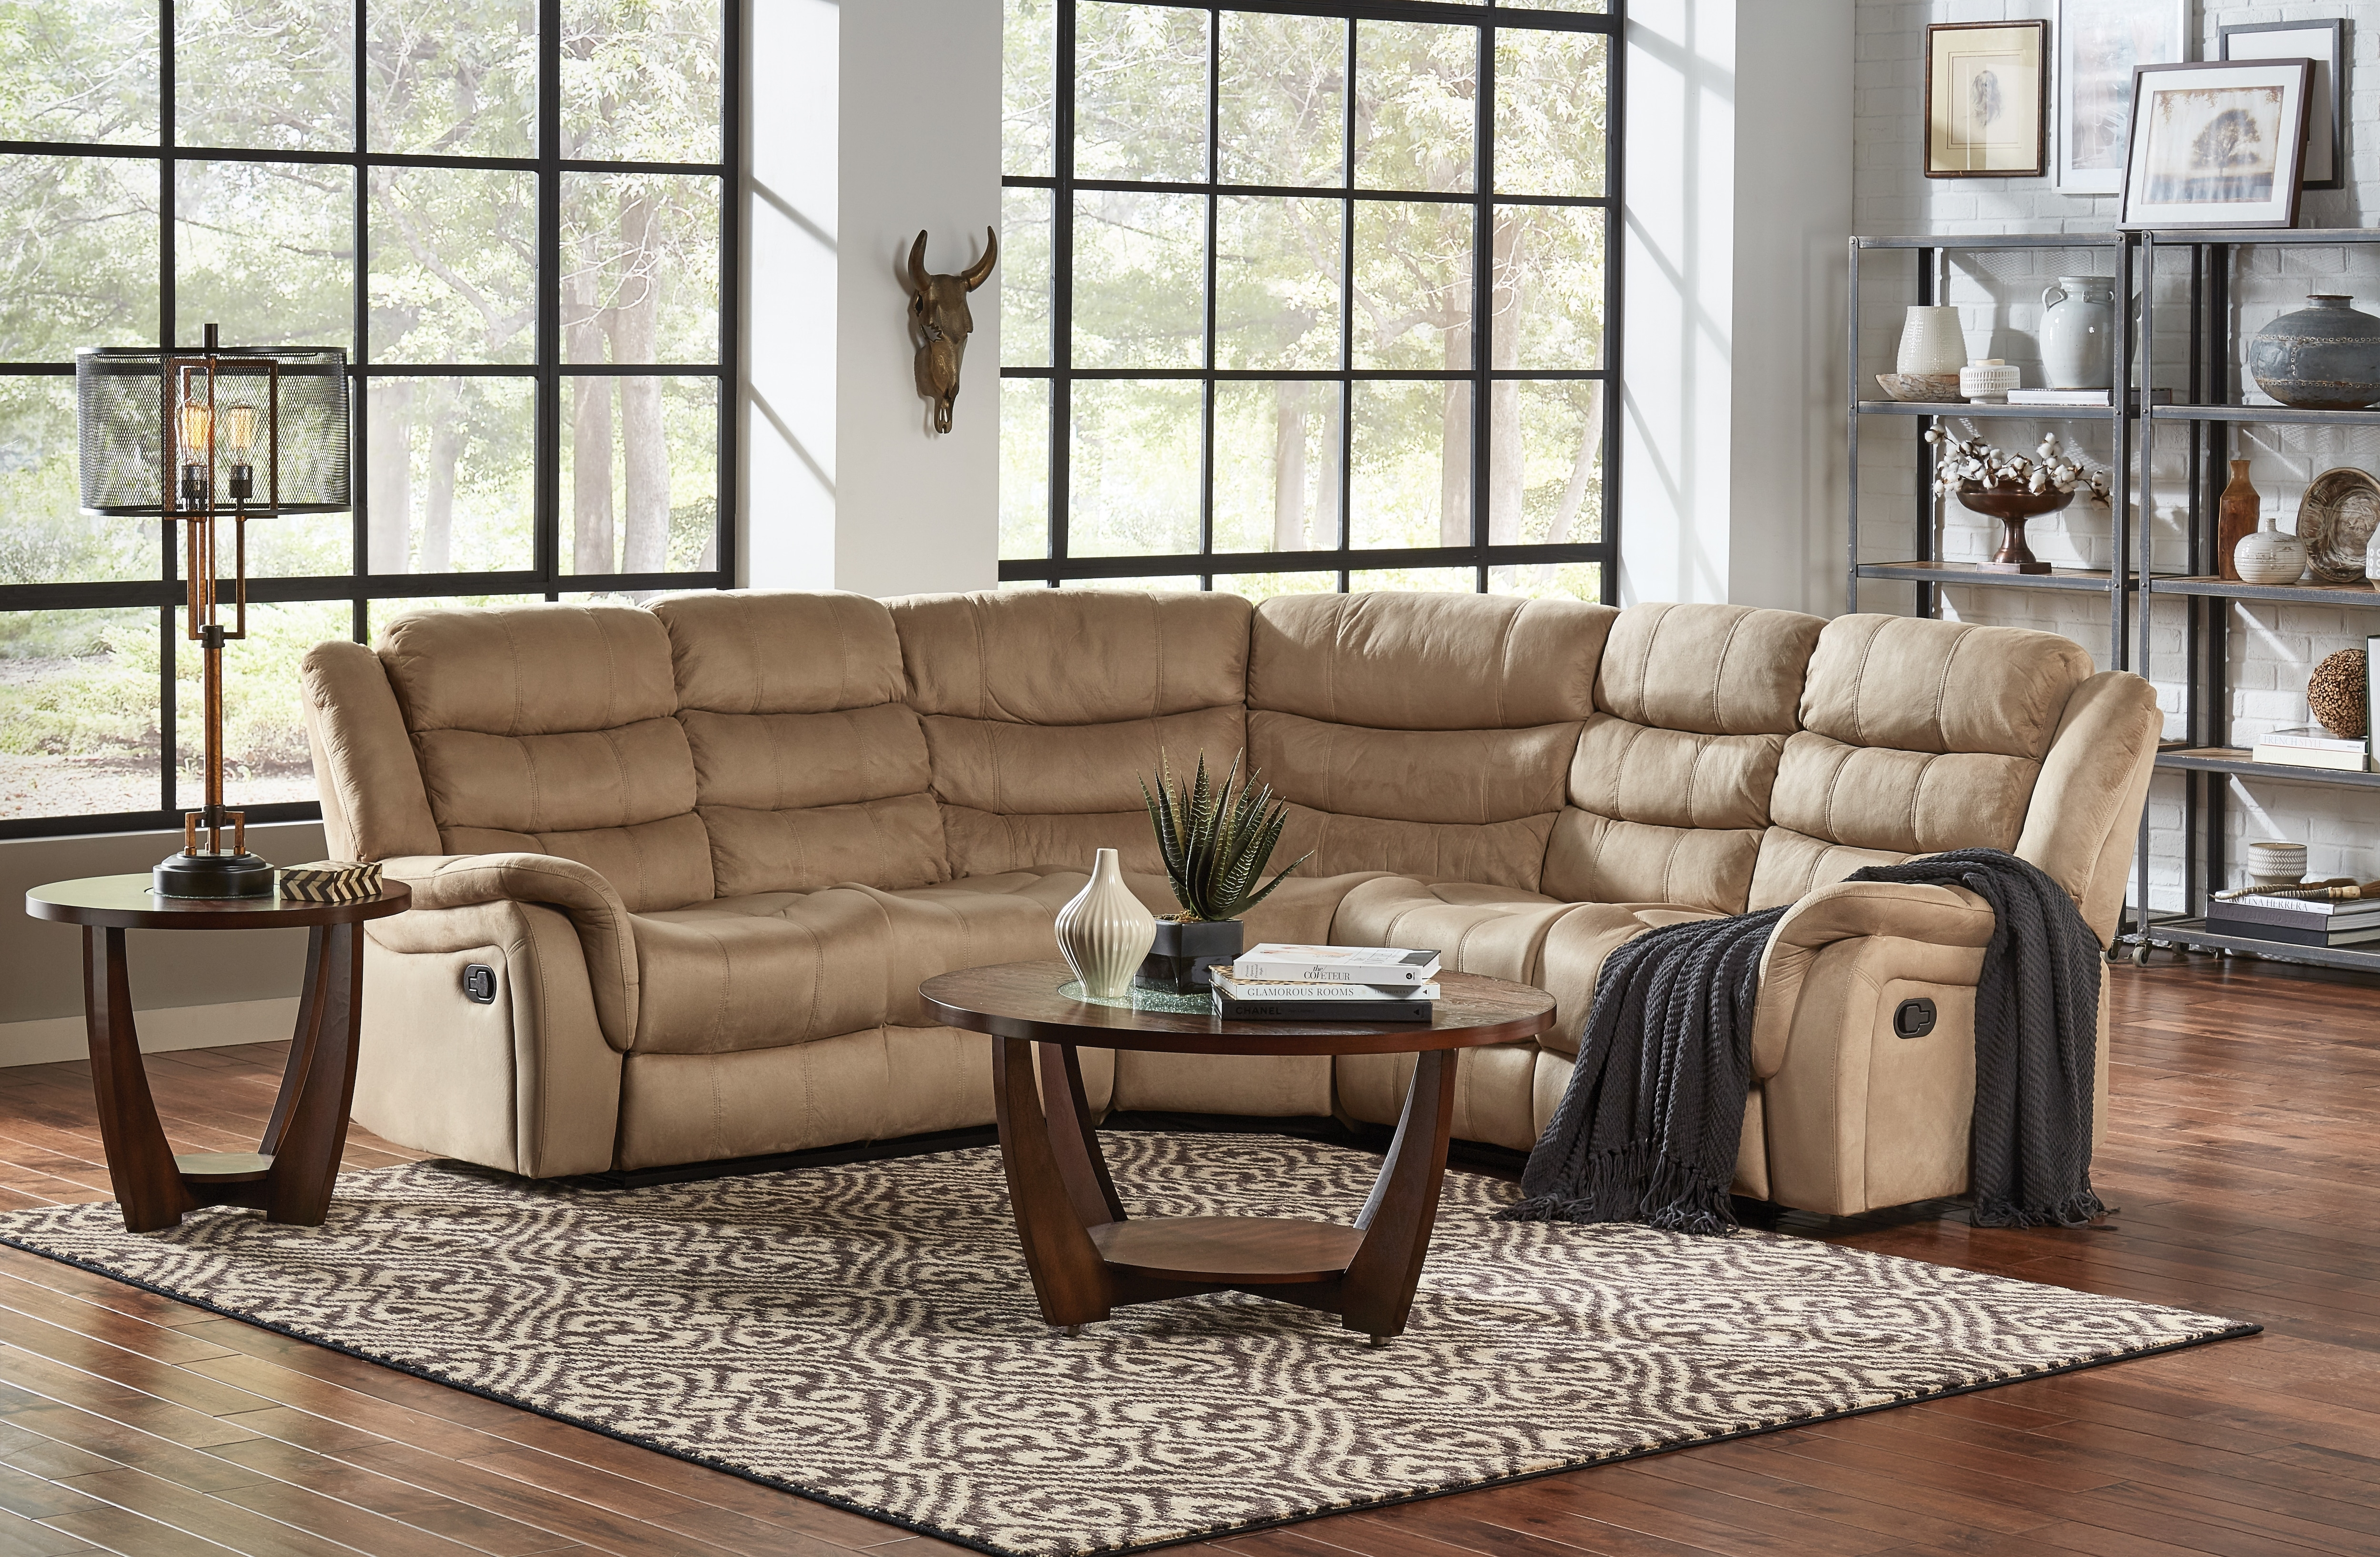 Benton 3Pc Reclining Sectional | Within Glamour Ii 3 Piece Sectionals (Image 5 of 25)